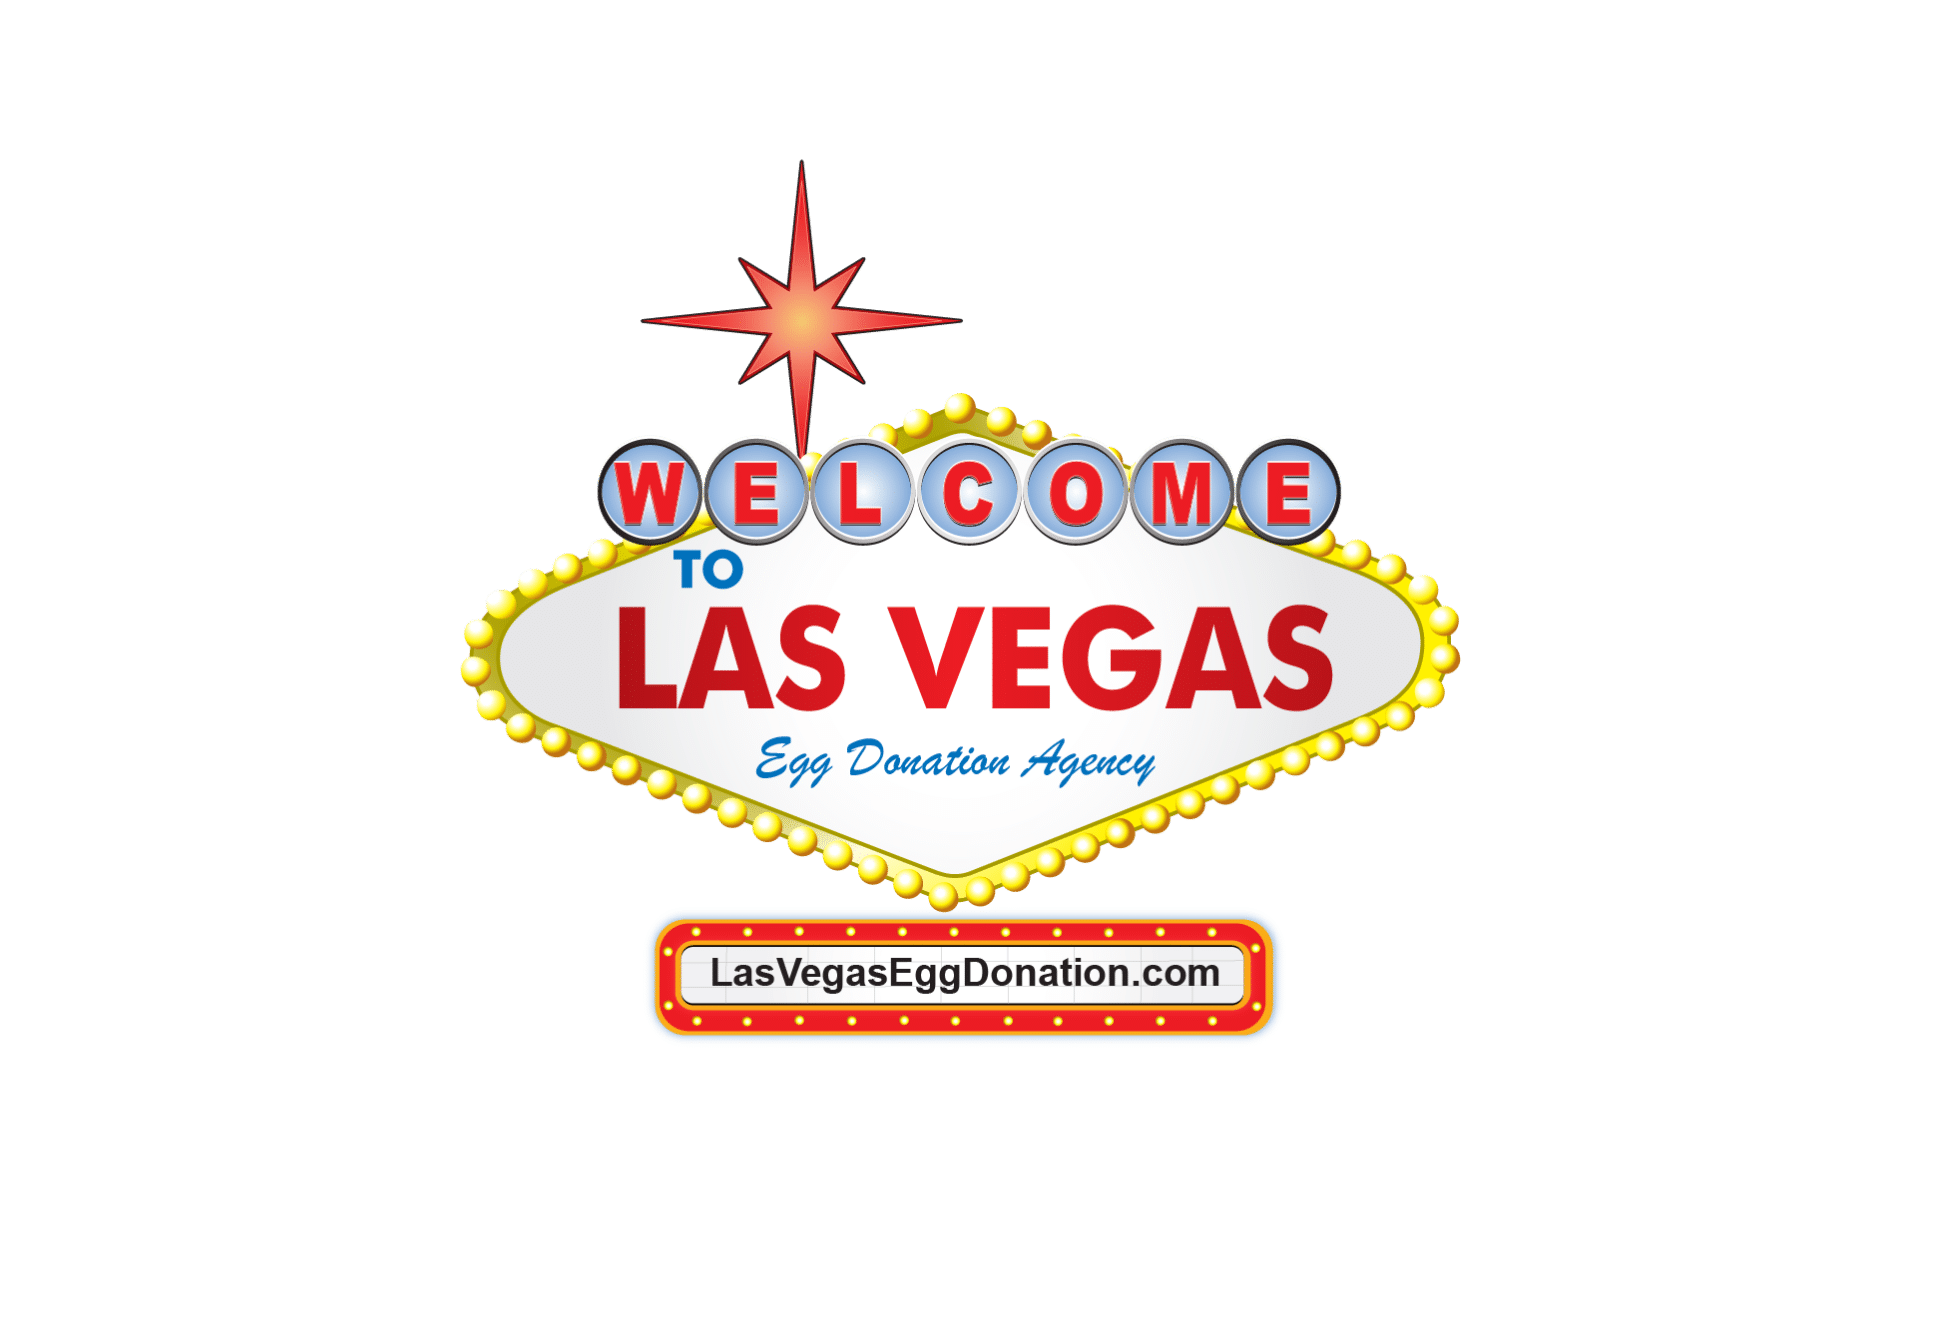 Las Vegas Egg Donation Welcome Sign